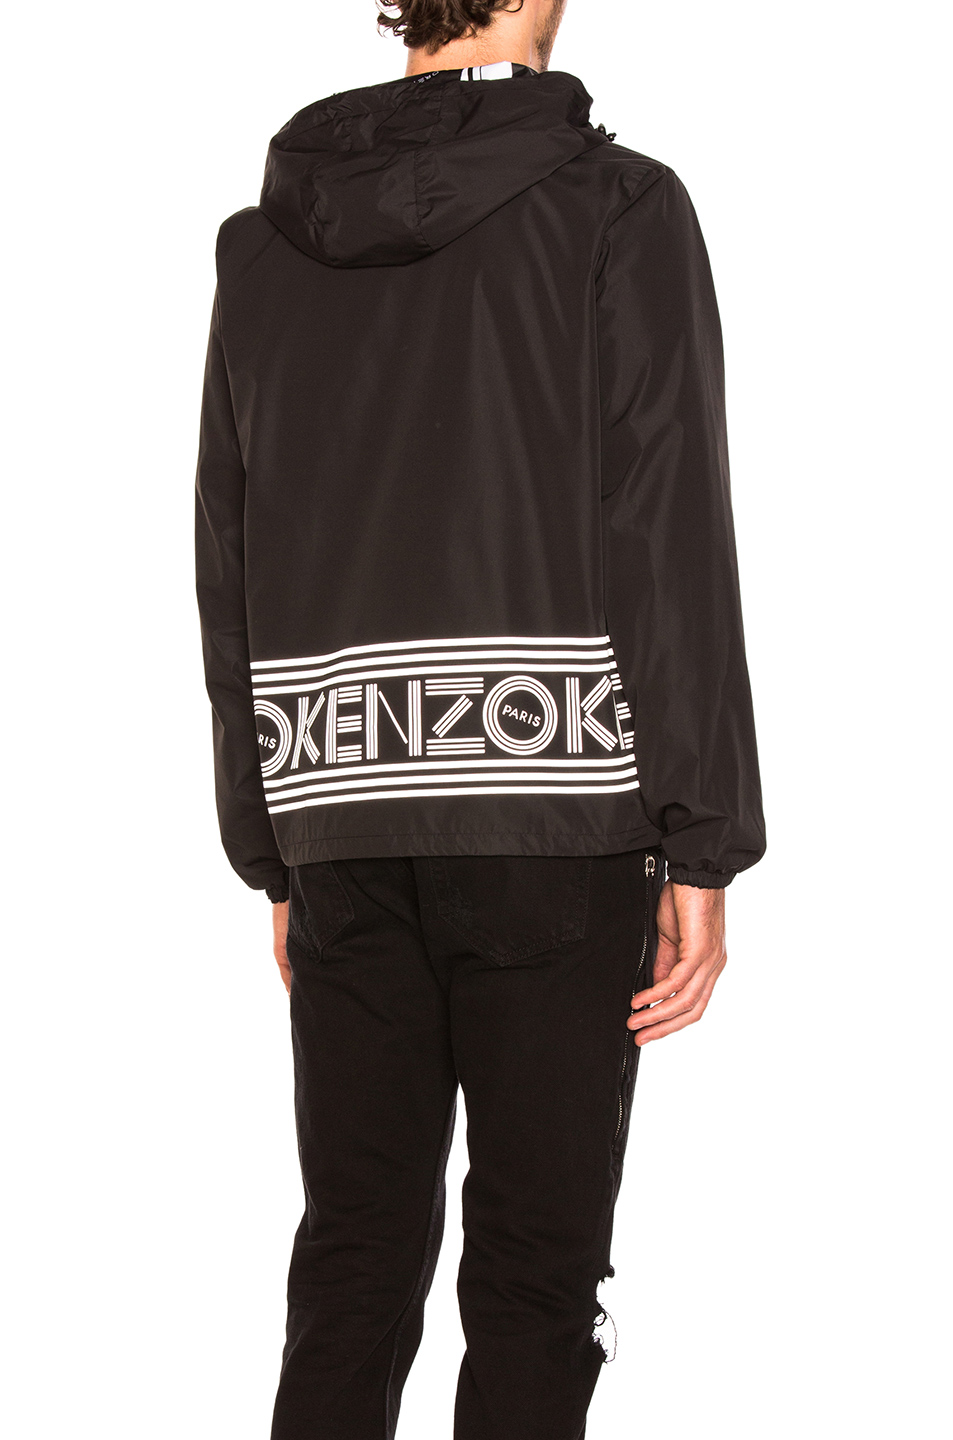 Kenzo Reversible Nylon Jacket in Black,Abstract